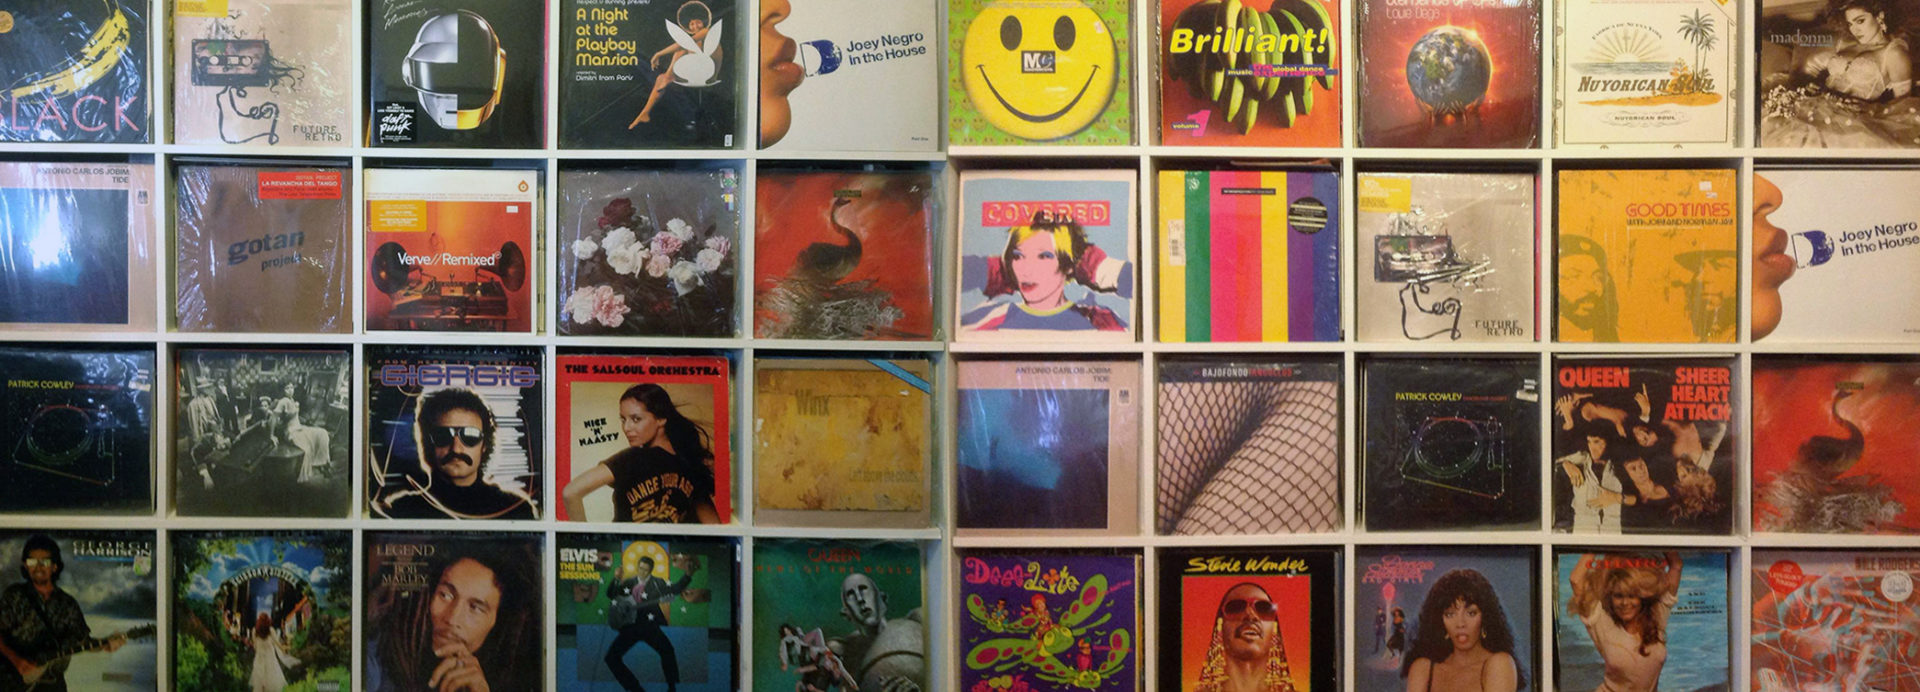 A large collection of vinyl record album covers